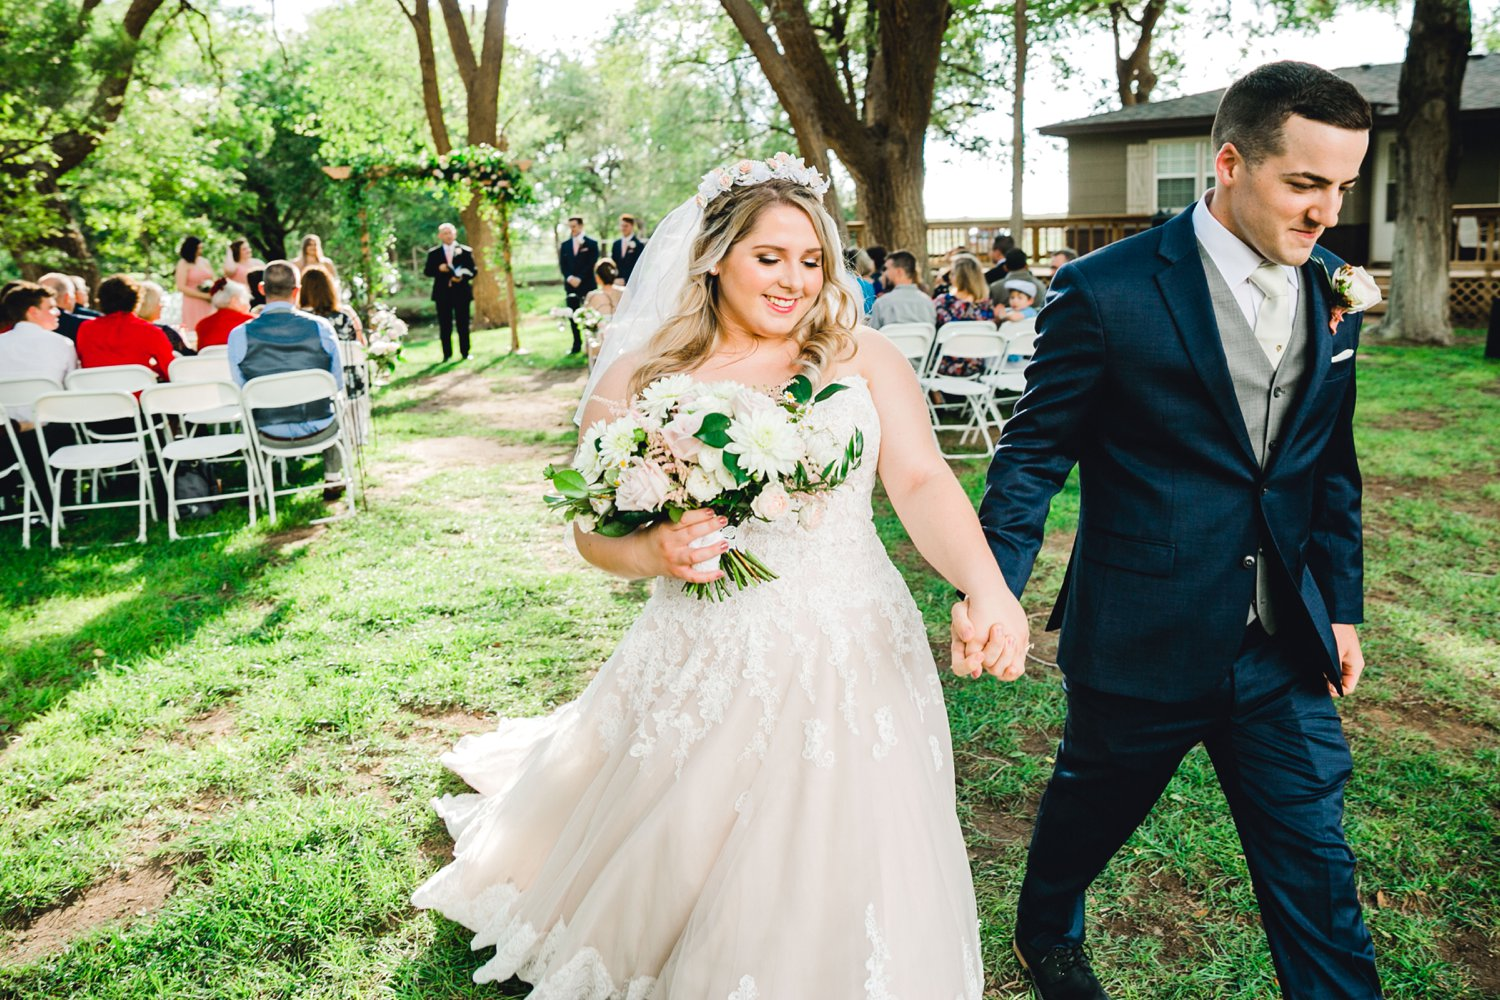 SARAH_AND_GEOFFREY_SHARP_SPIRIT_RANCH_WEDDING_ALLEEJ_LUBBOCK_TX_0080.jpg